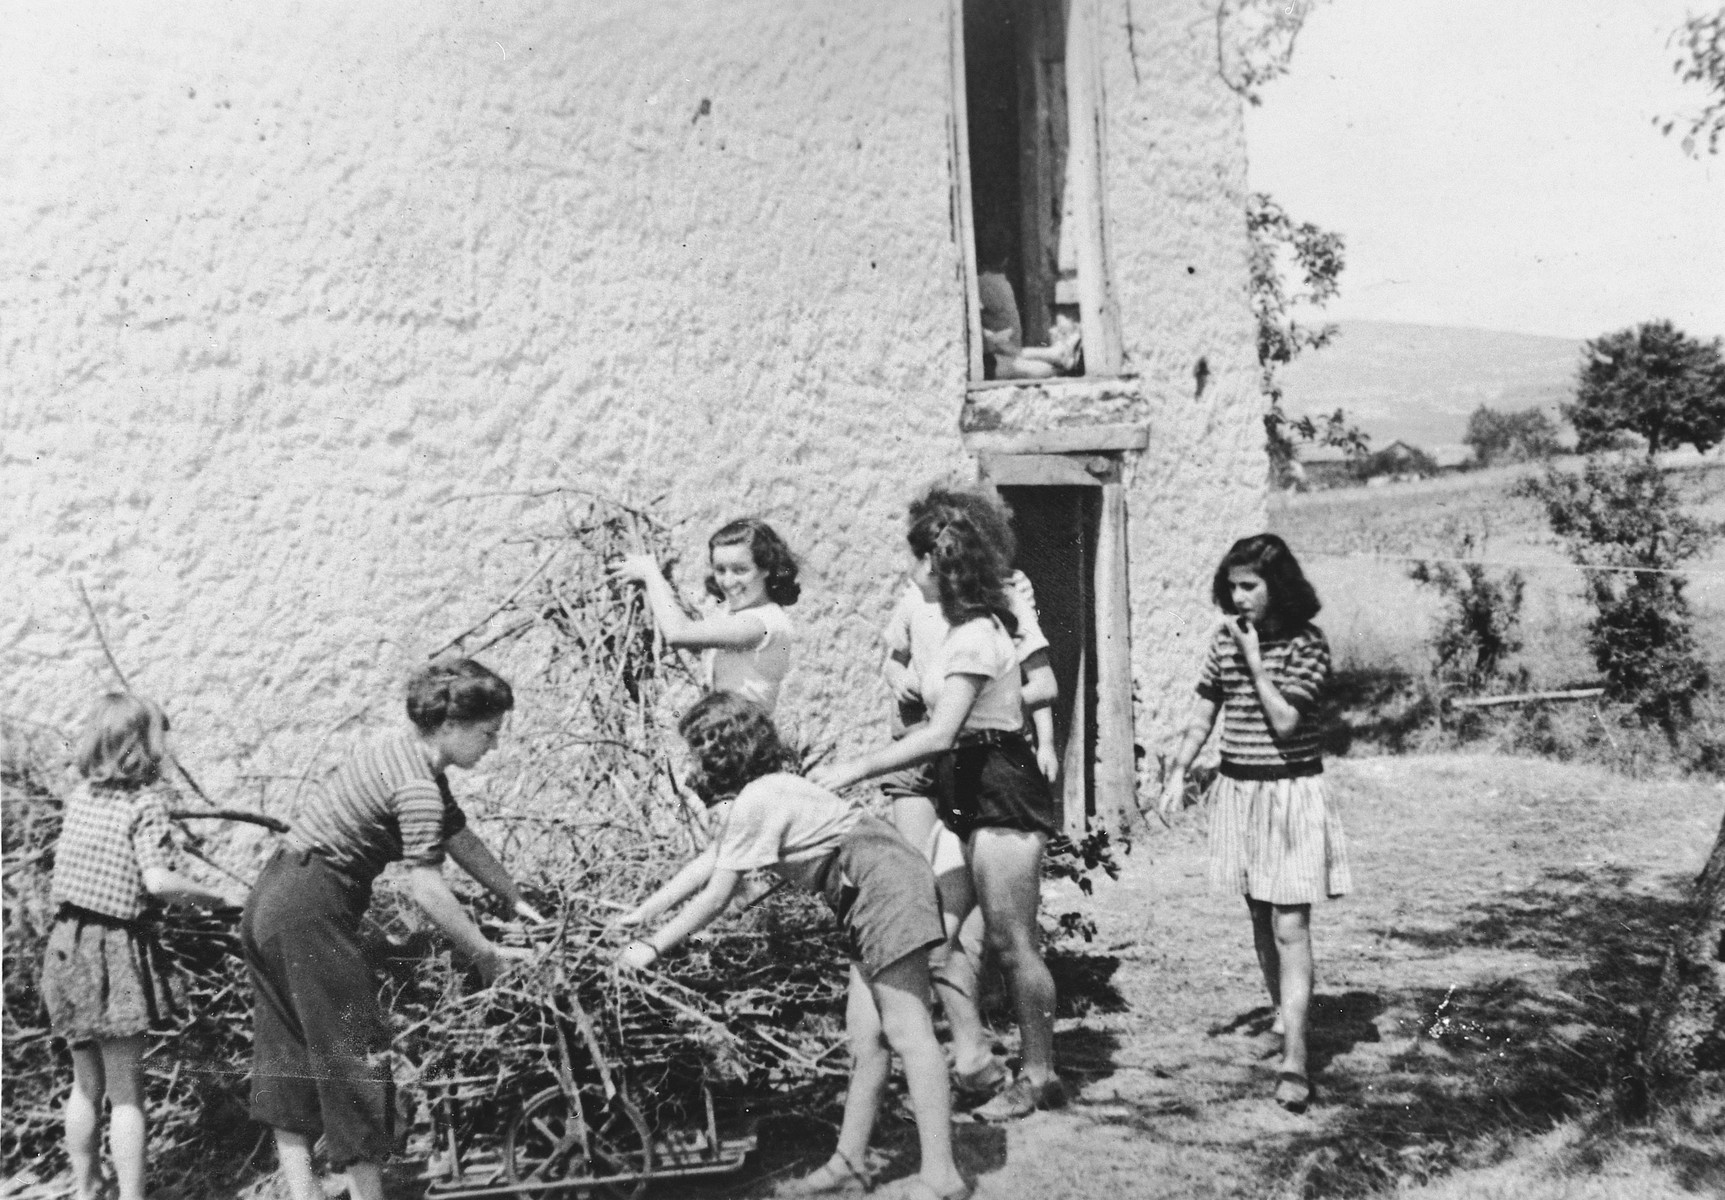 Jewish children gather up sticks outside an OSE children's home [perhaps La Forge in Fontenay-aux-Roses].